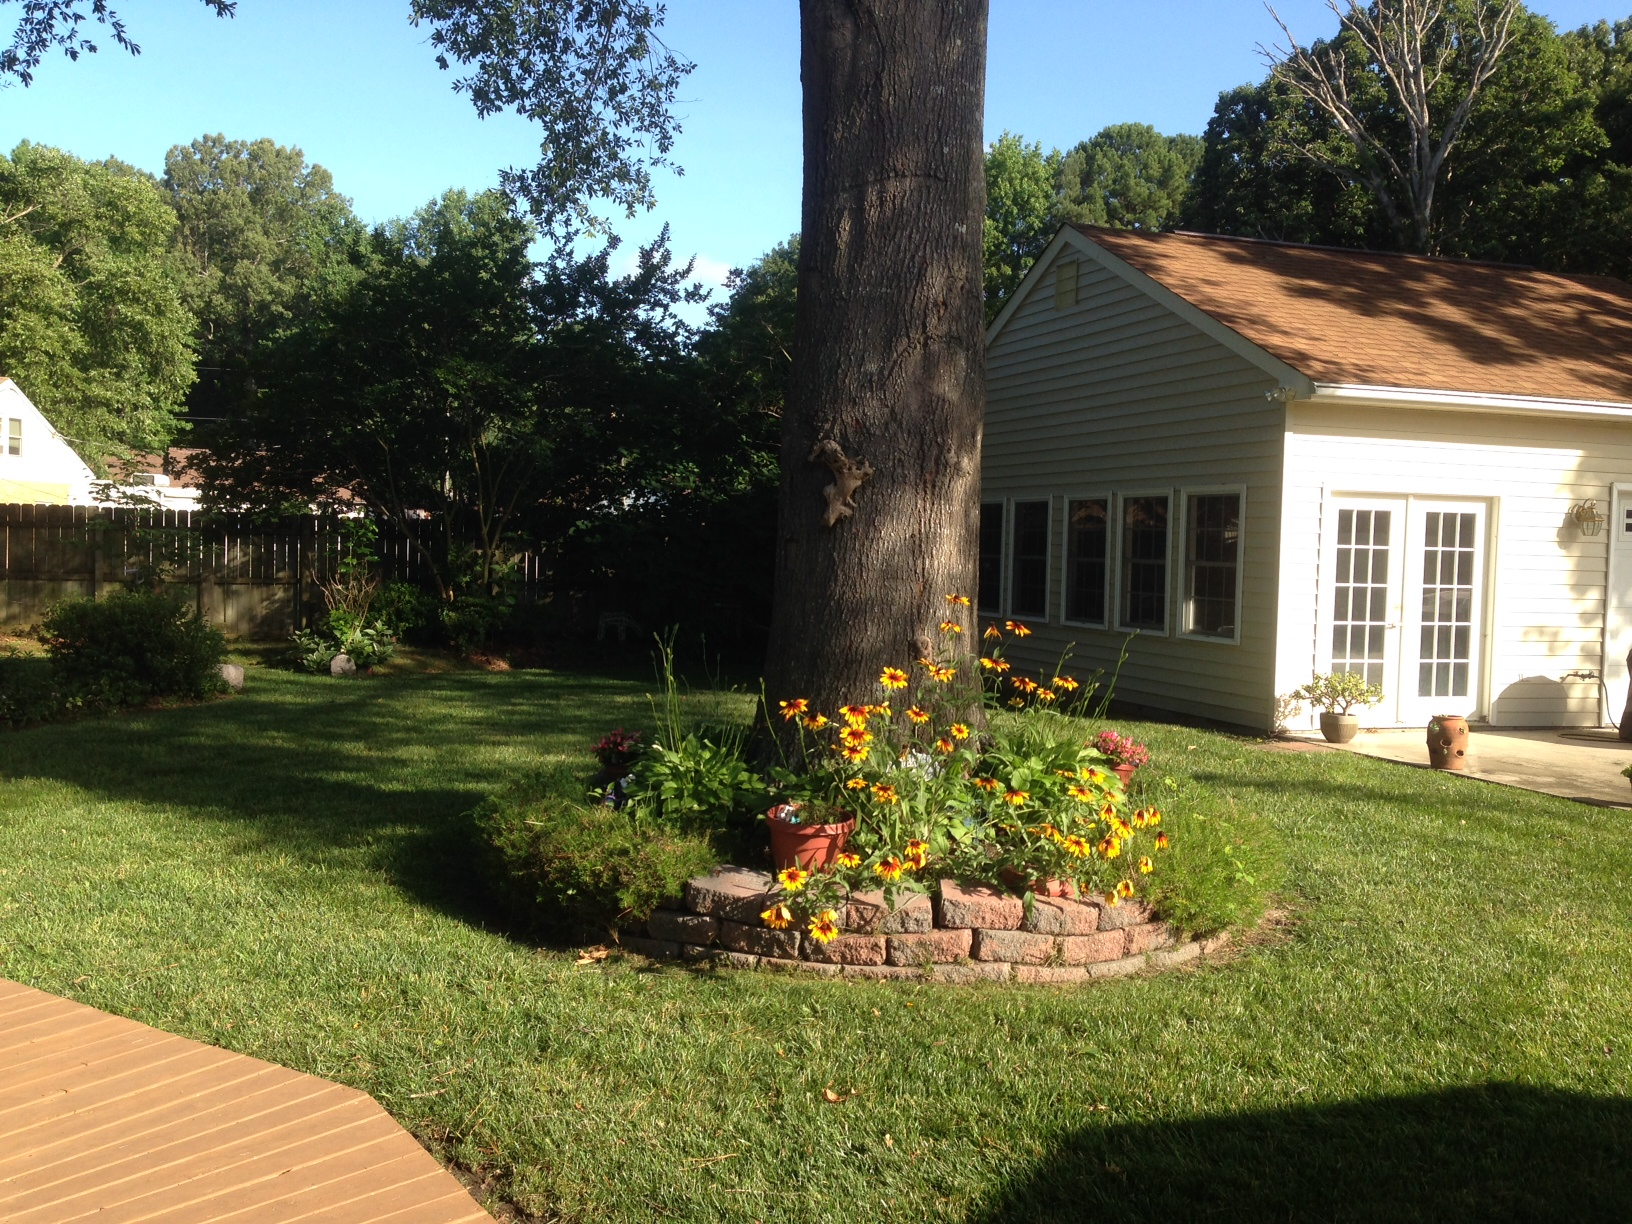 Gorgeous lawn and tree covergarden